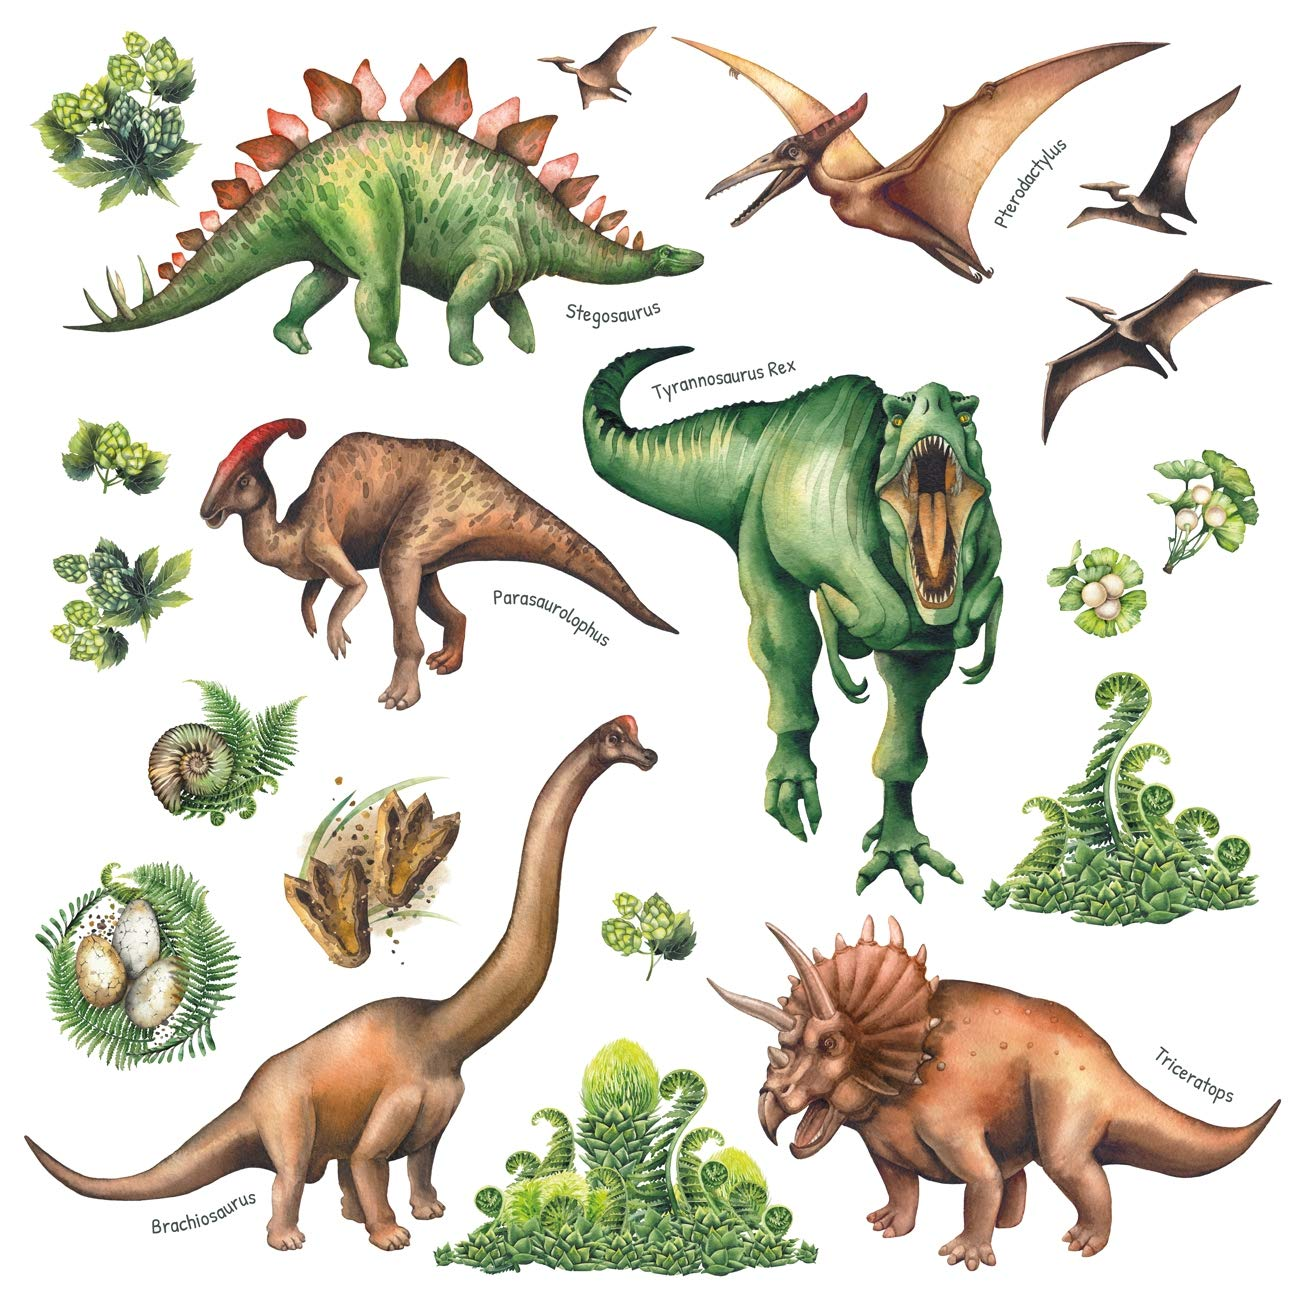 Vinilo Decorativo Pared [7l9yyyqn] Dinosaurios